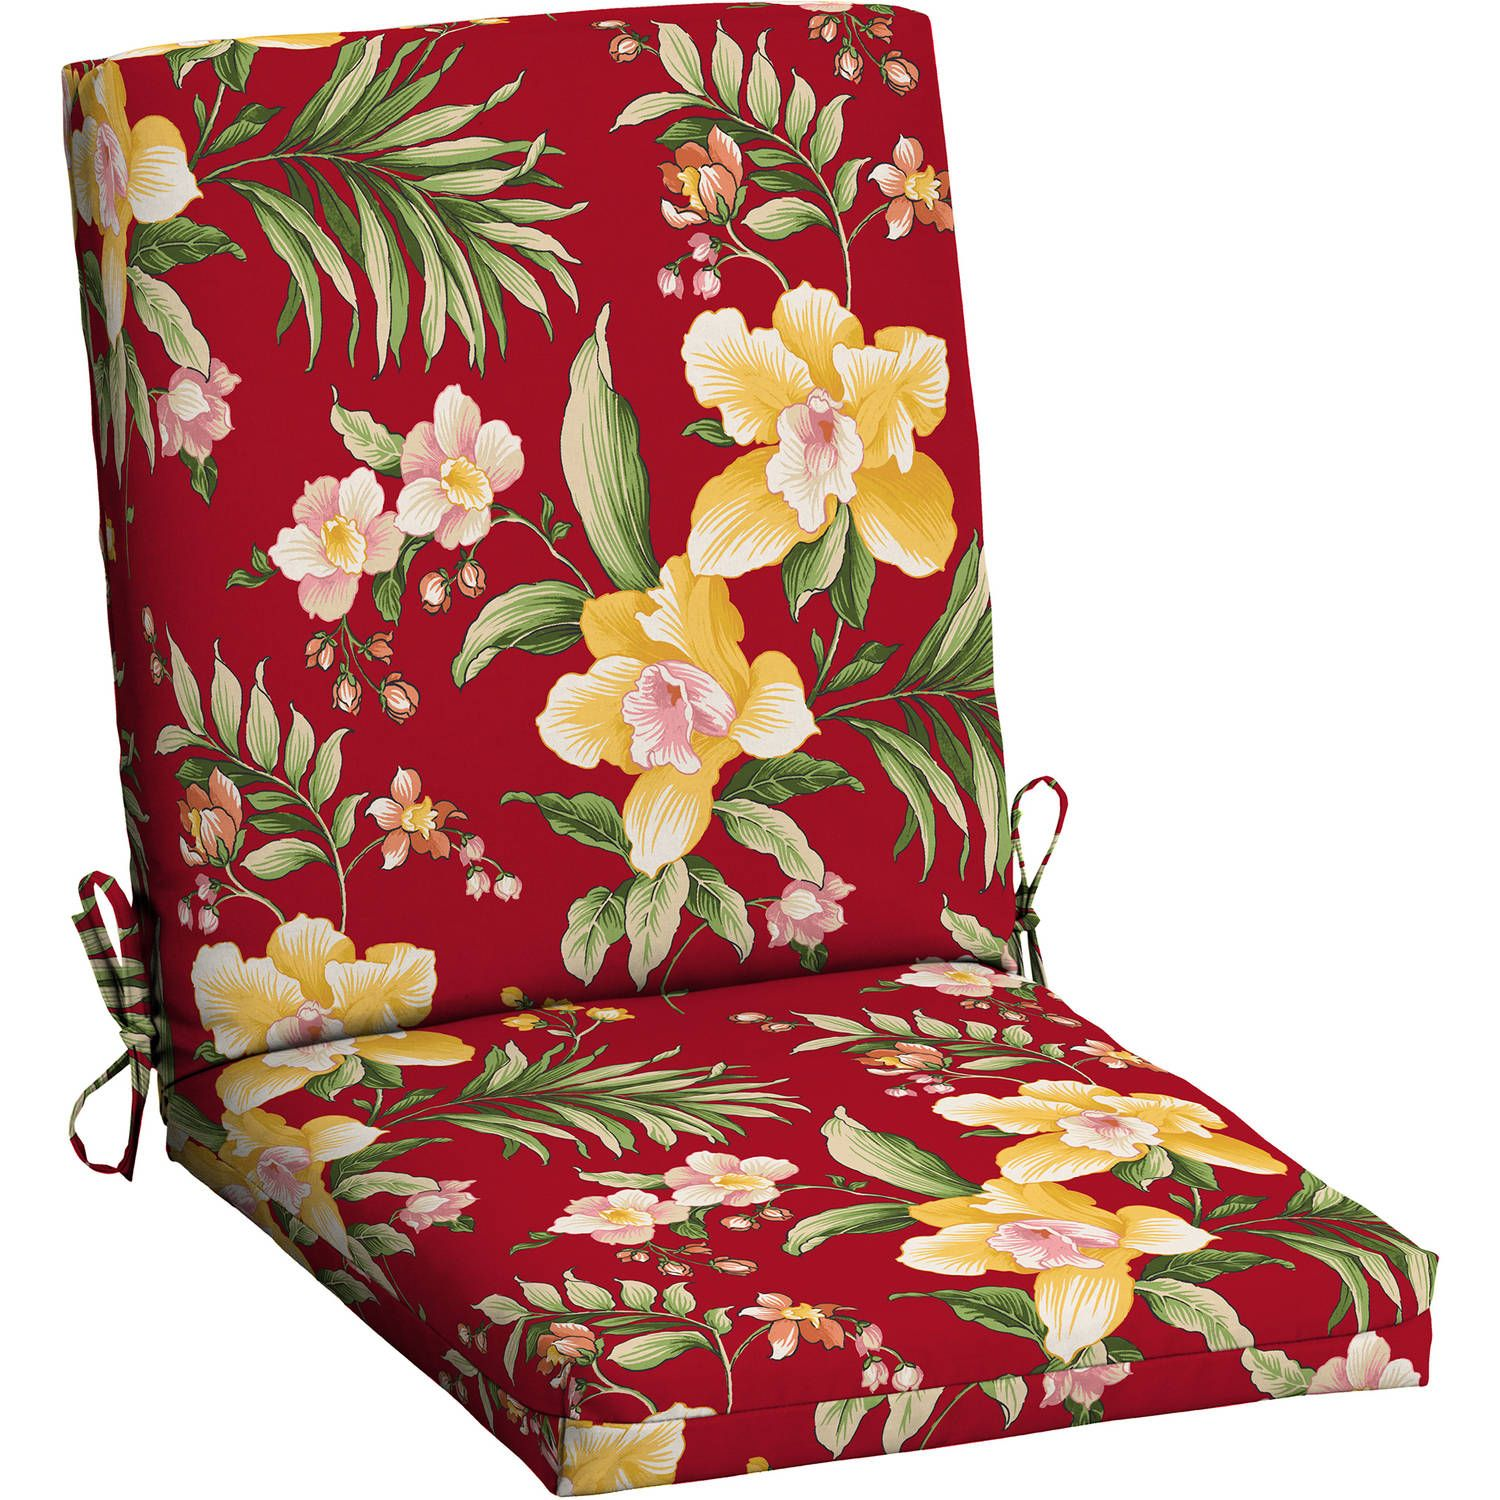 Refresh your patio set with a great look at a great price. Add style and color to your outdoor living area with this Mainstays Outdoor Dining Chair cushion. This cushion fits most standard patio furniture and is filled with 100 percent polyester for outdoor use. Easy-care polyester fabric is UV-rated to resist fading and can be cleaned using just soap and water. There are self-ties to fasten the c ** Read more  at the image link.